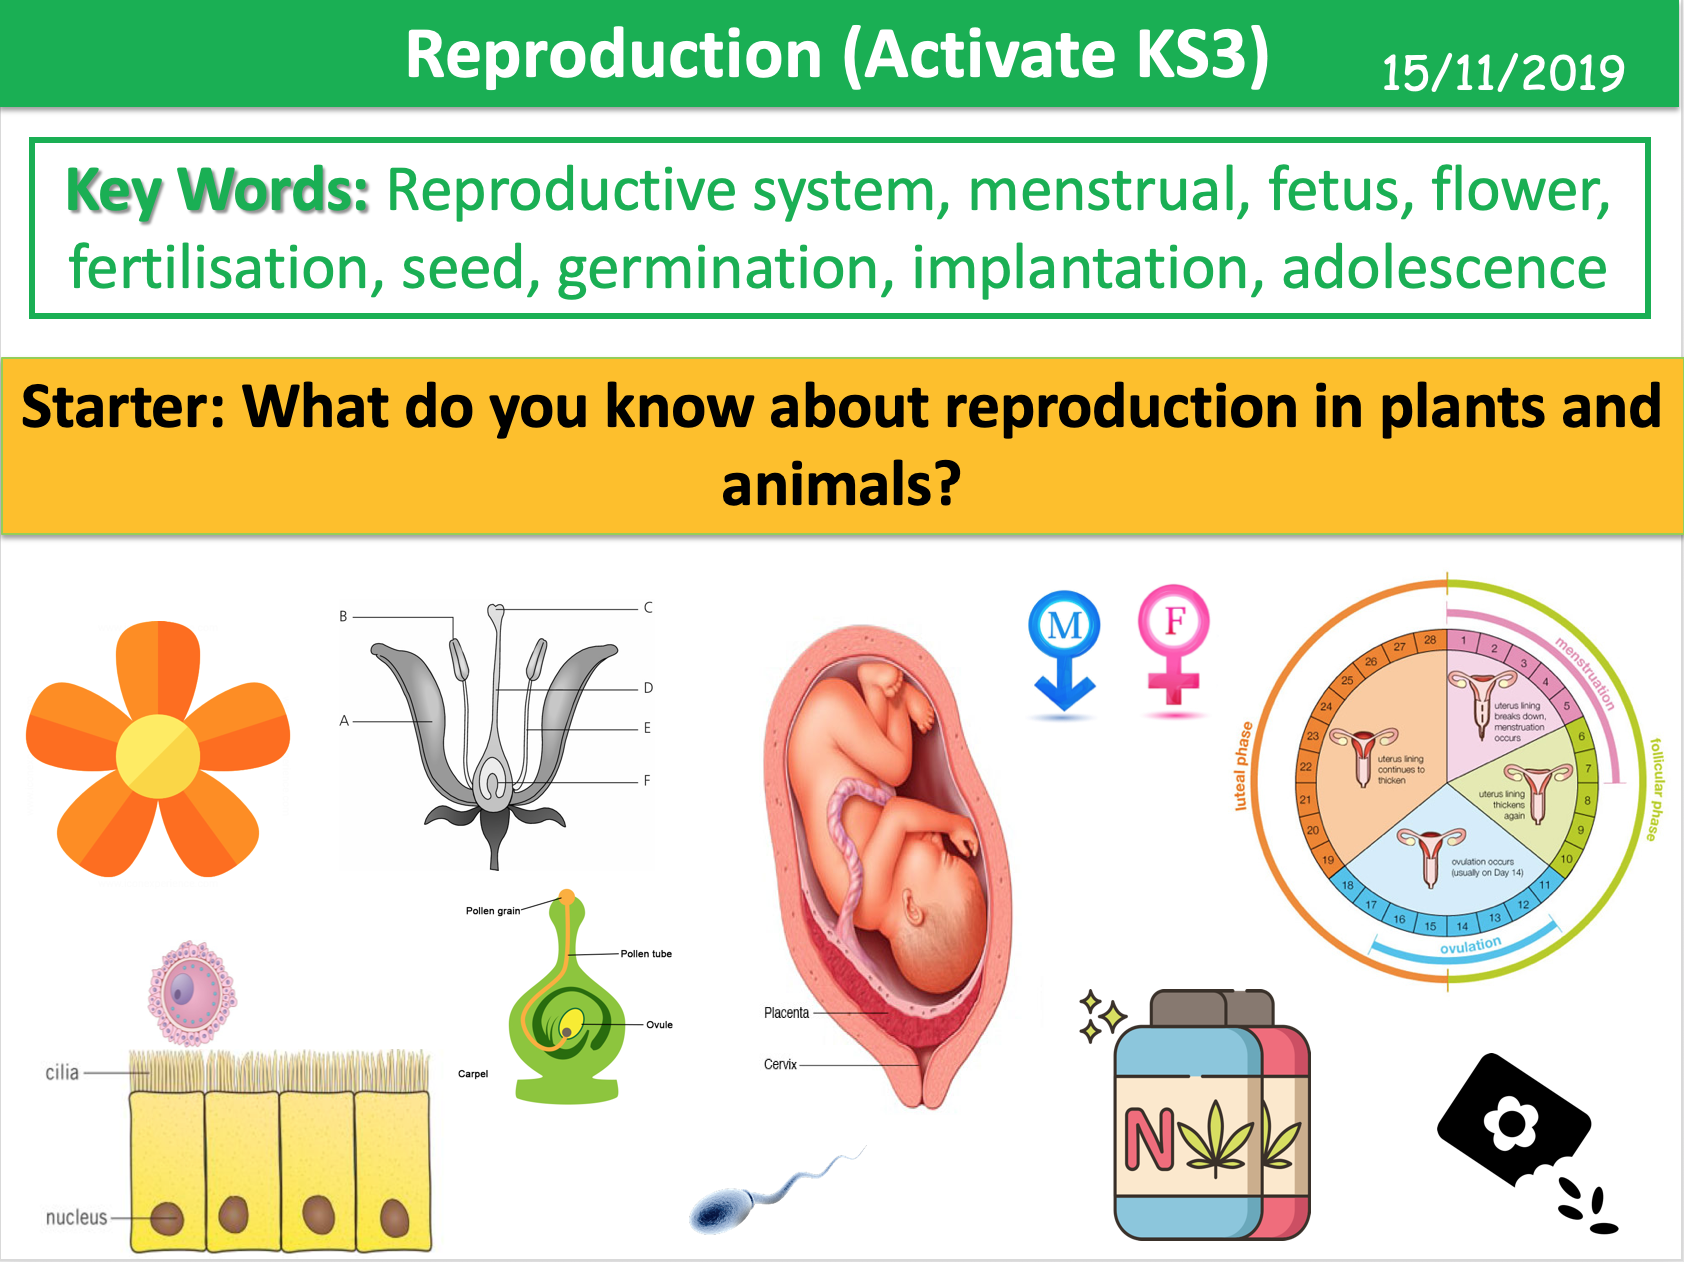 Reproduction (Activate KS3)